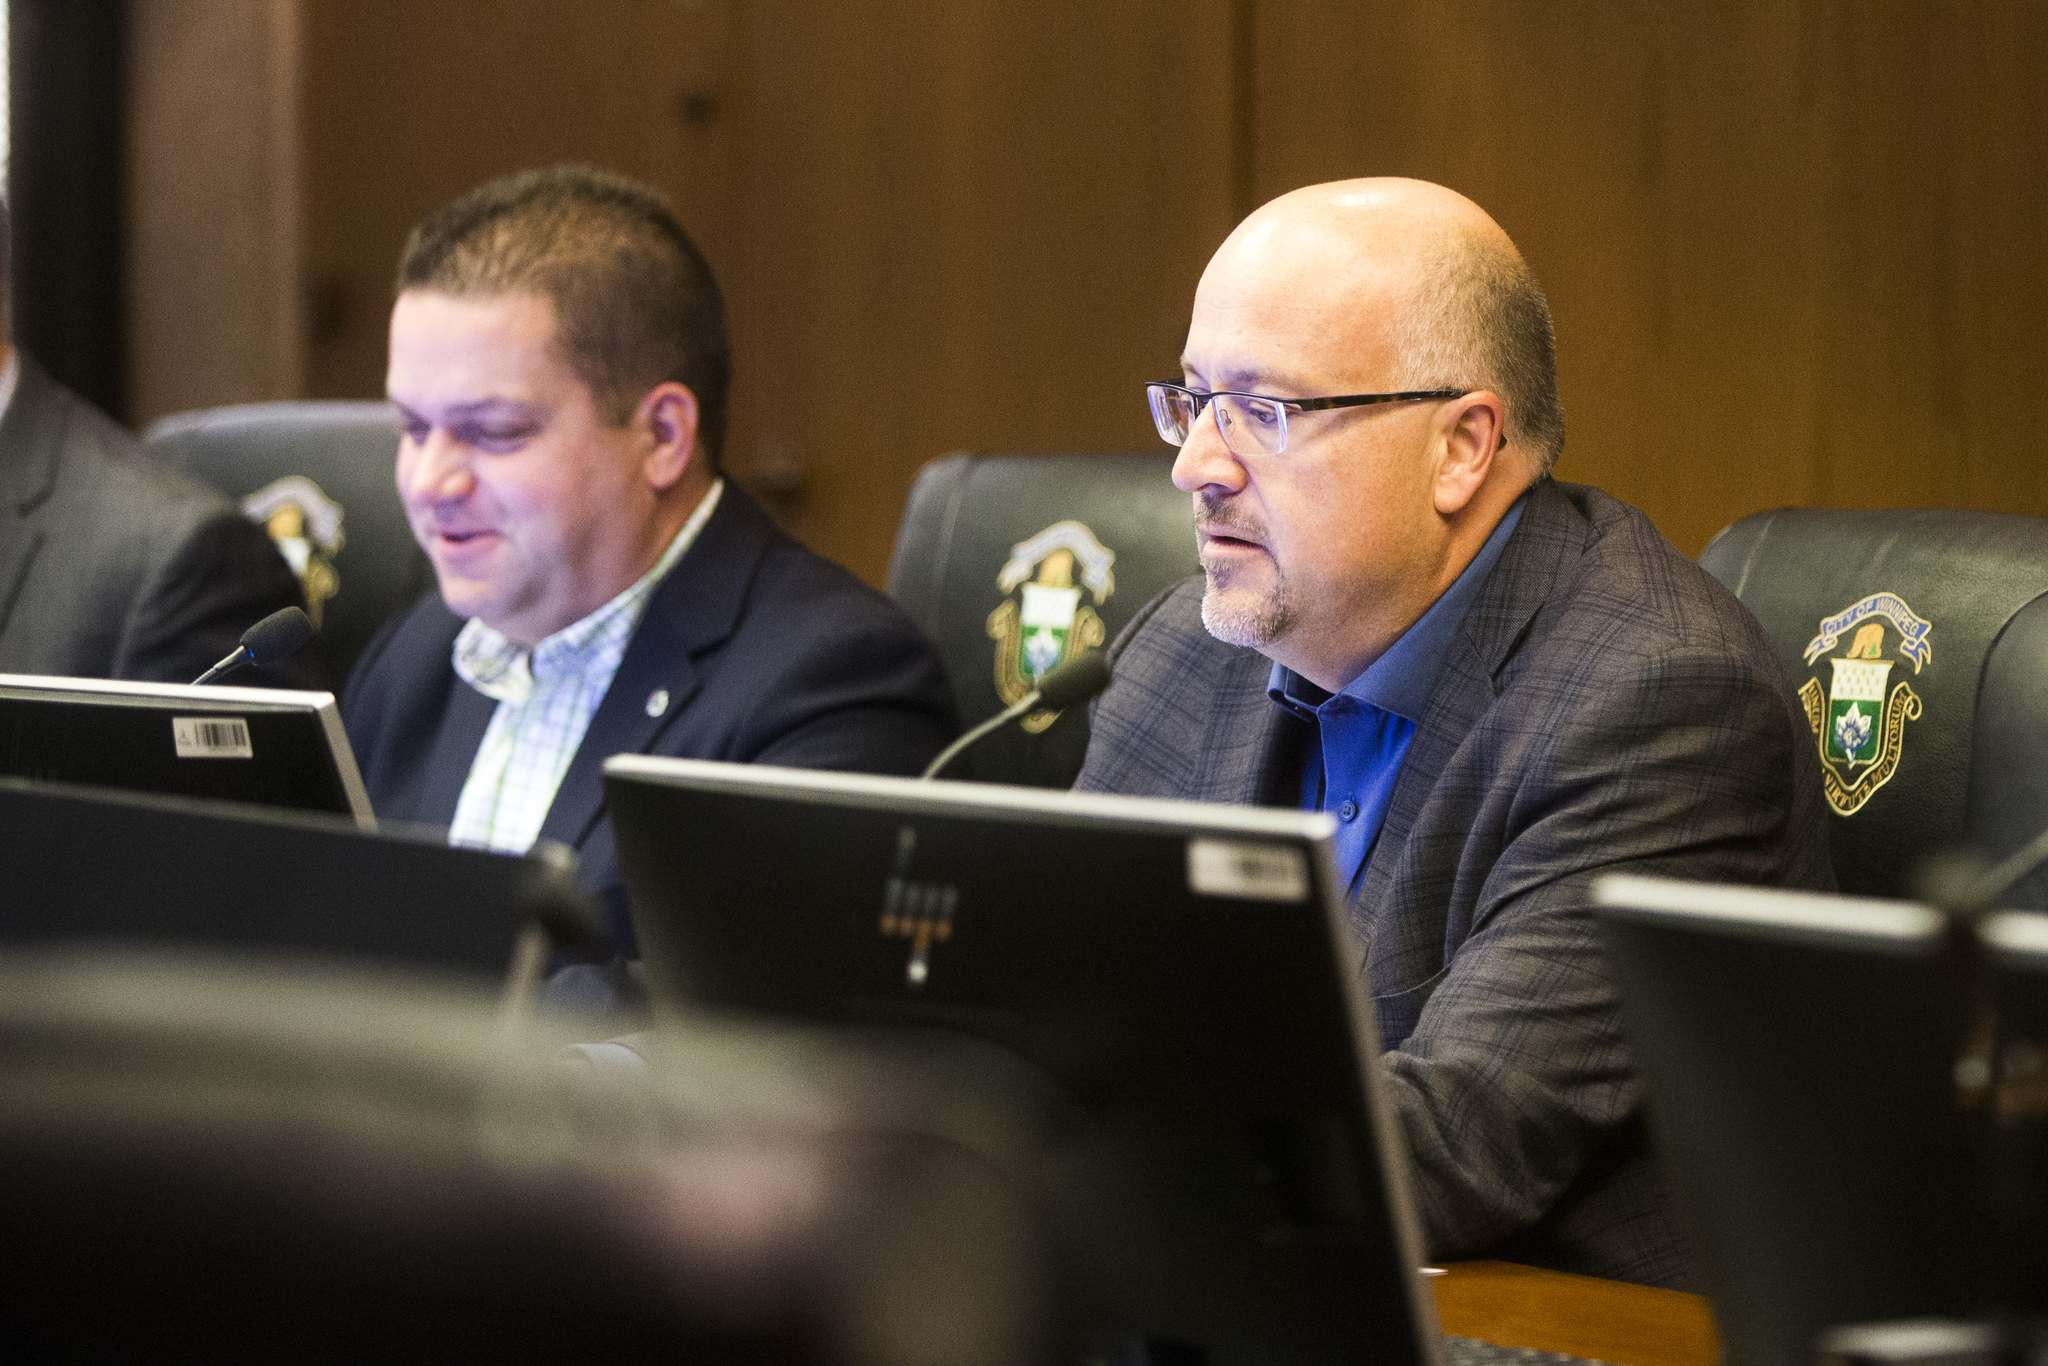 Coun. Russ Wyatt joined councillors Jeff Browaty and Jason Schreyer for a special meeting of the East Kildonan-Transcona community committee today at city hall. (Mikaela MacKenzie / Winnipeg Free Press)</p>